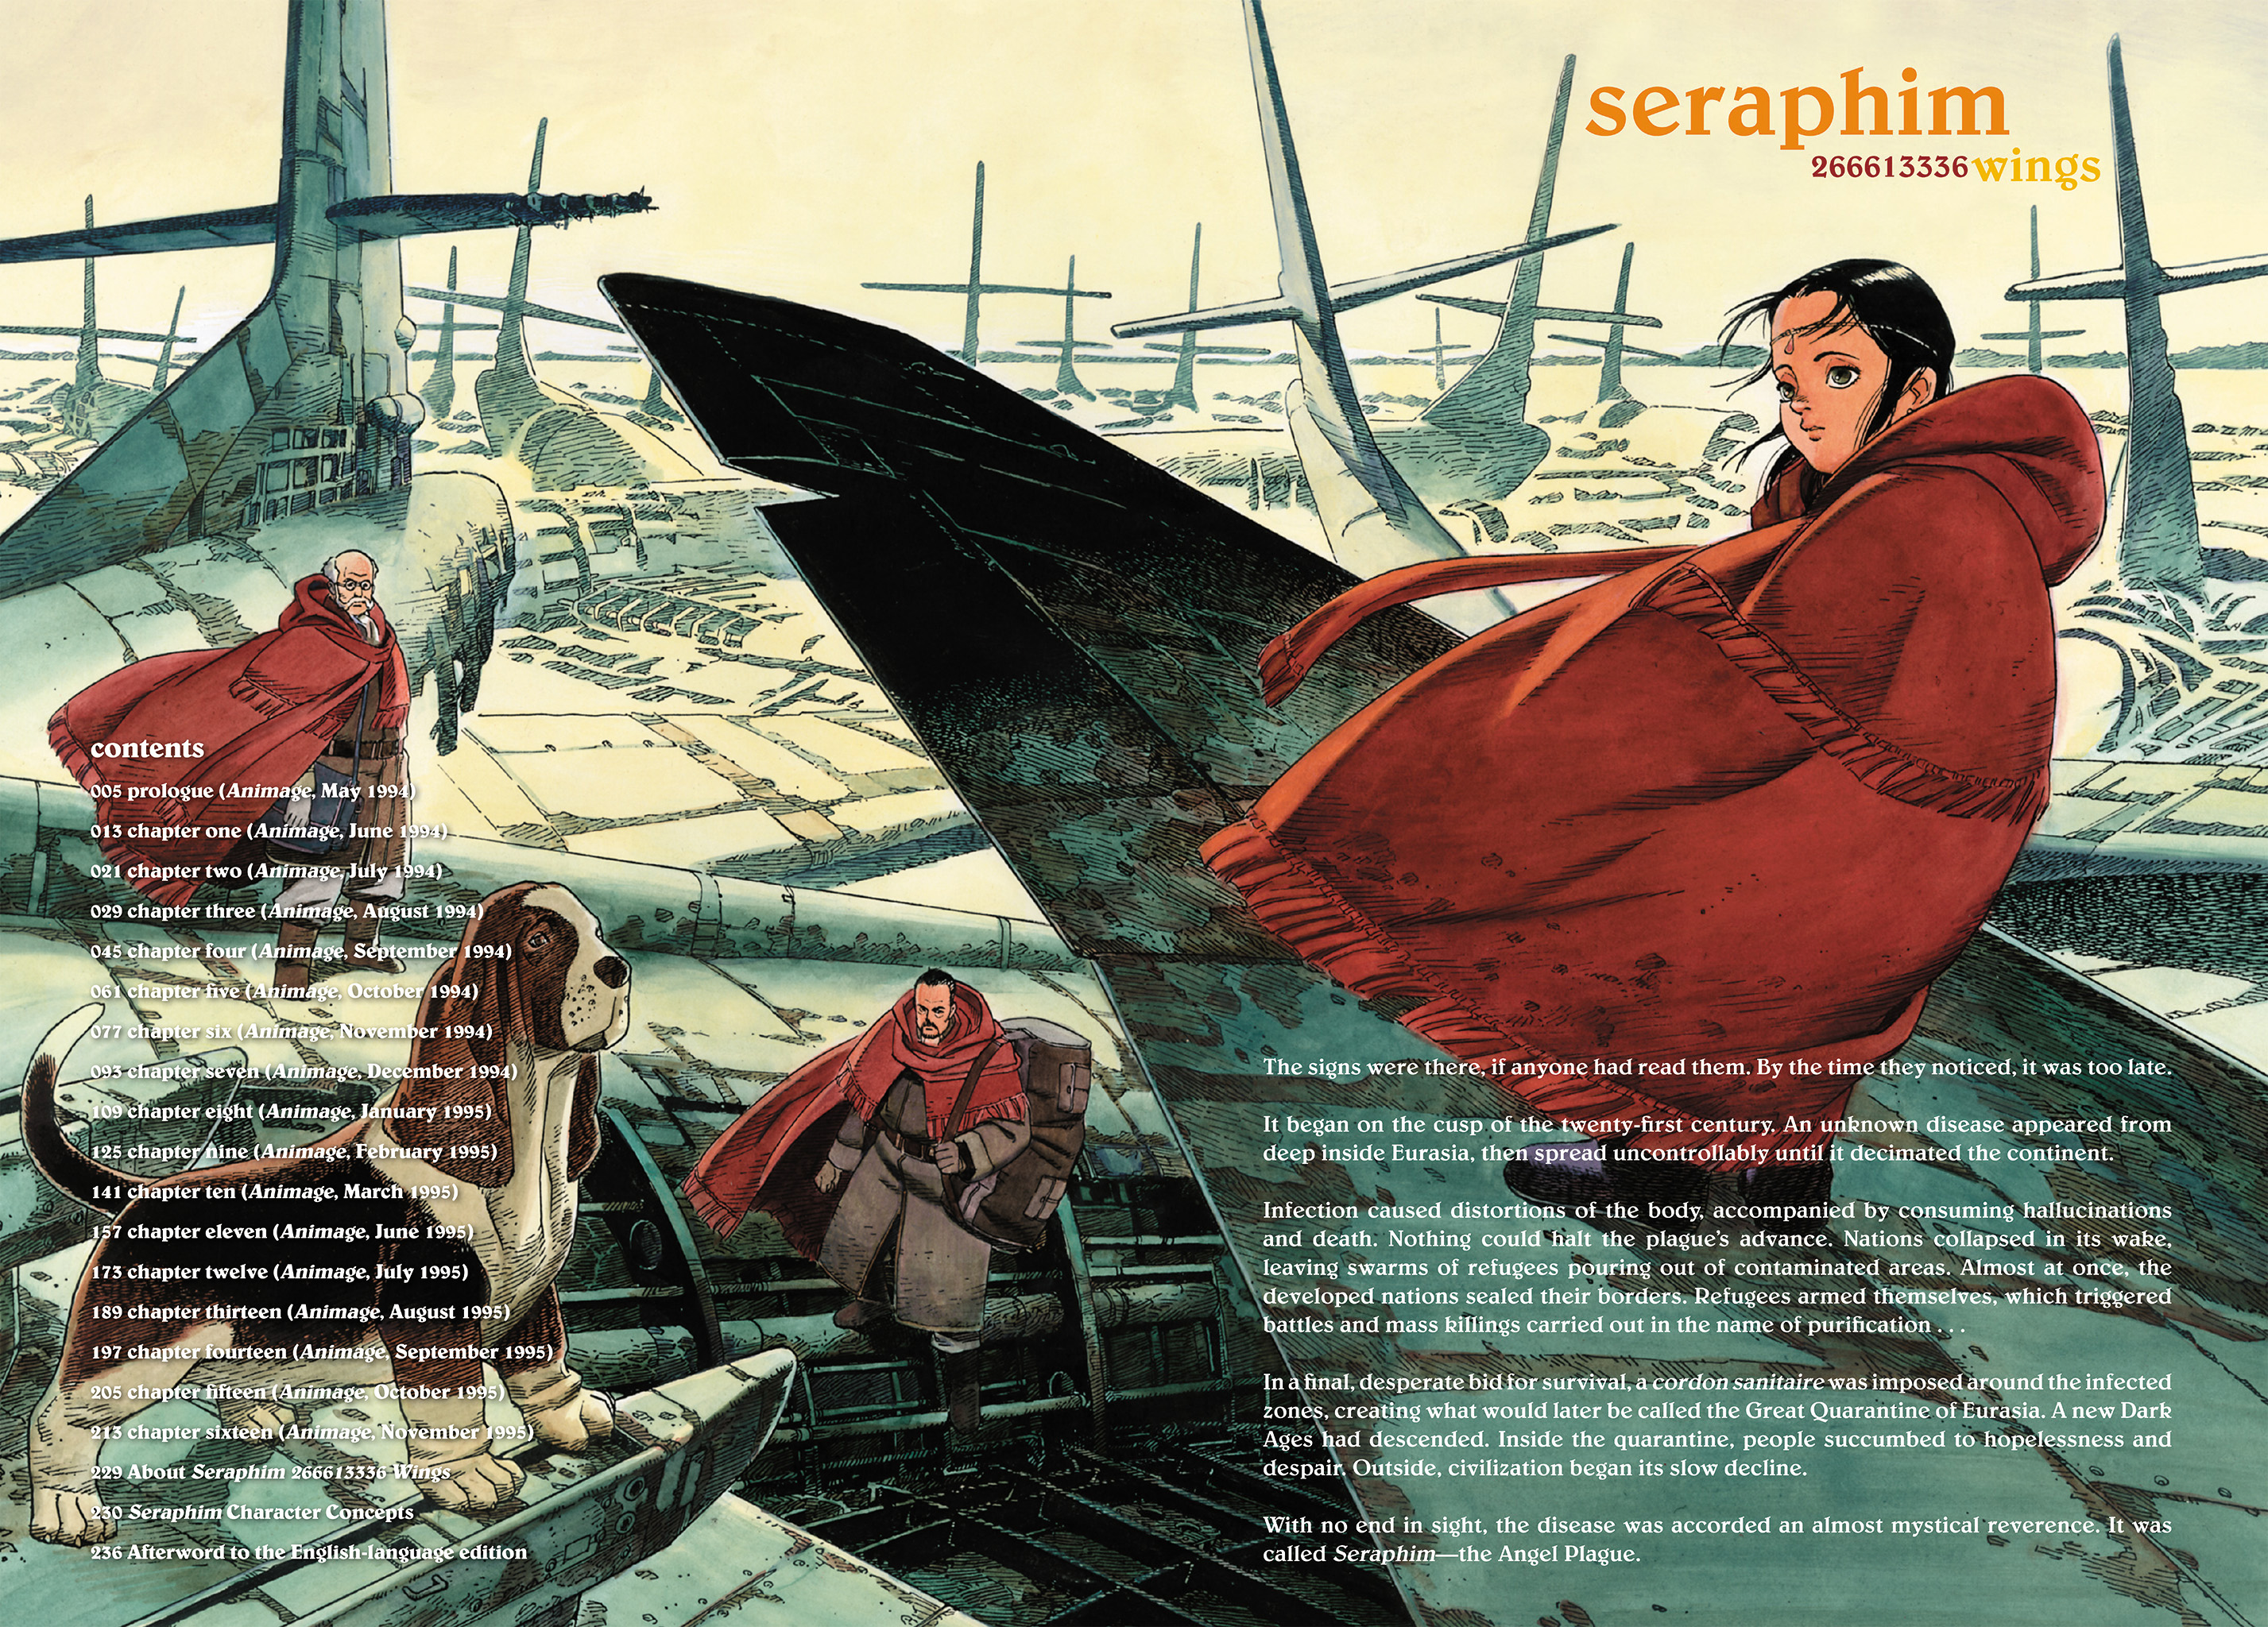 Read online Seraphim 266613336 Wings comic -  Issue # TPB - 3